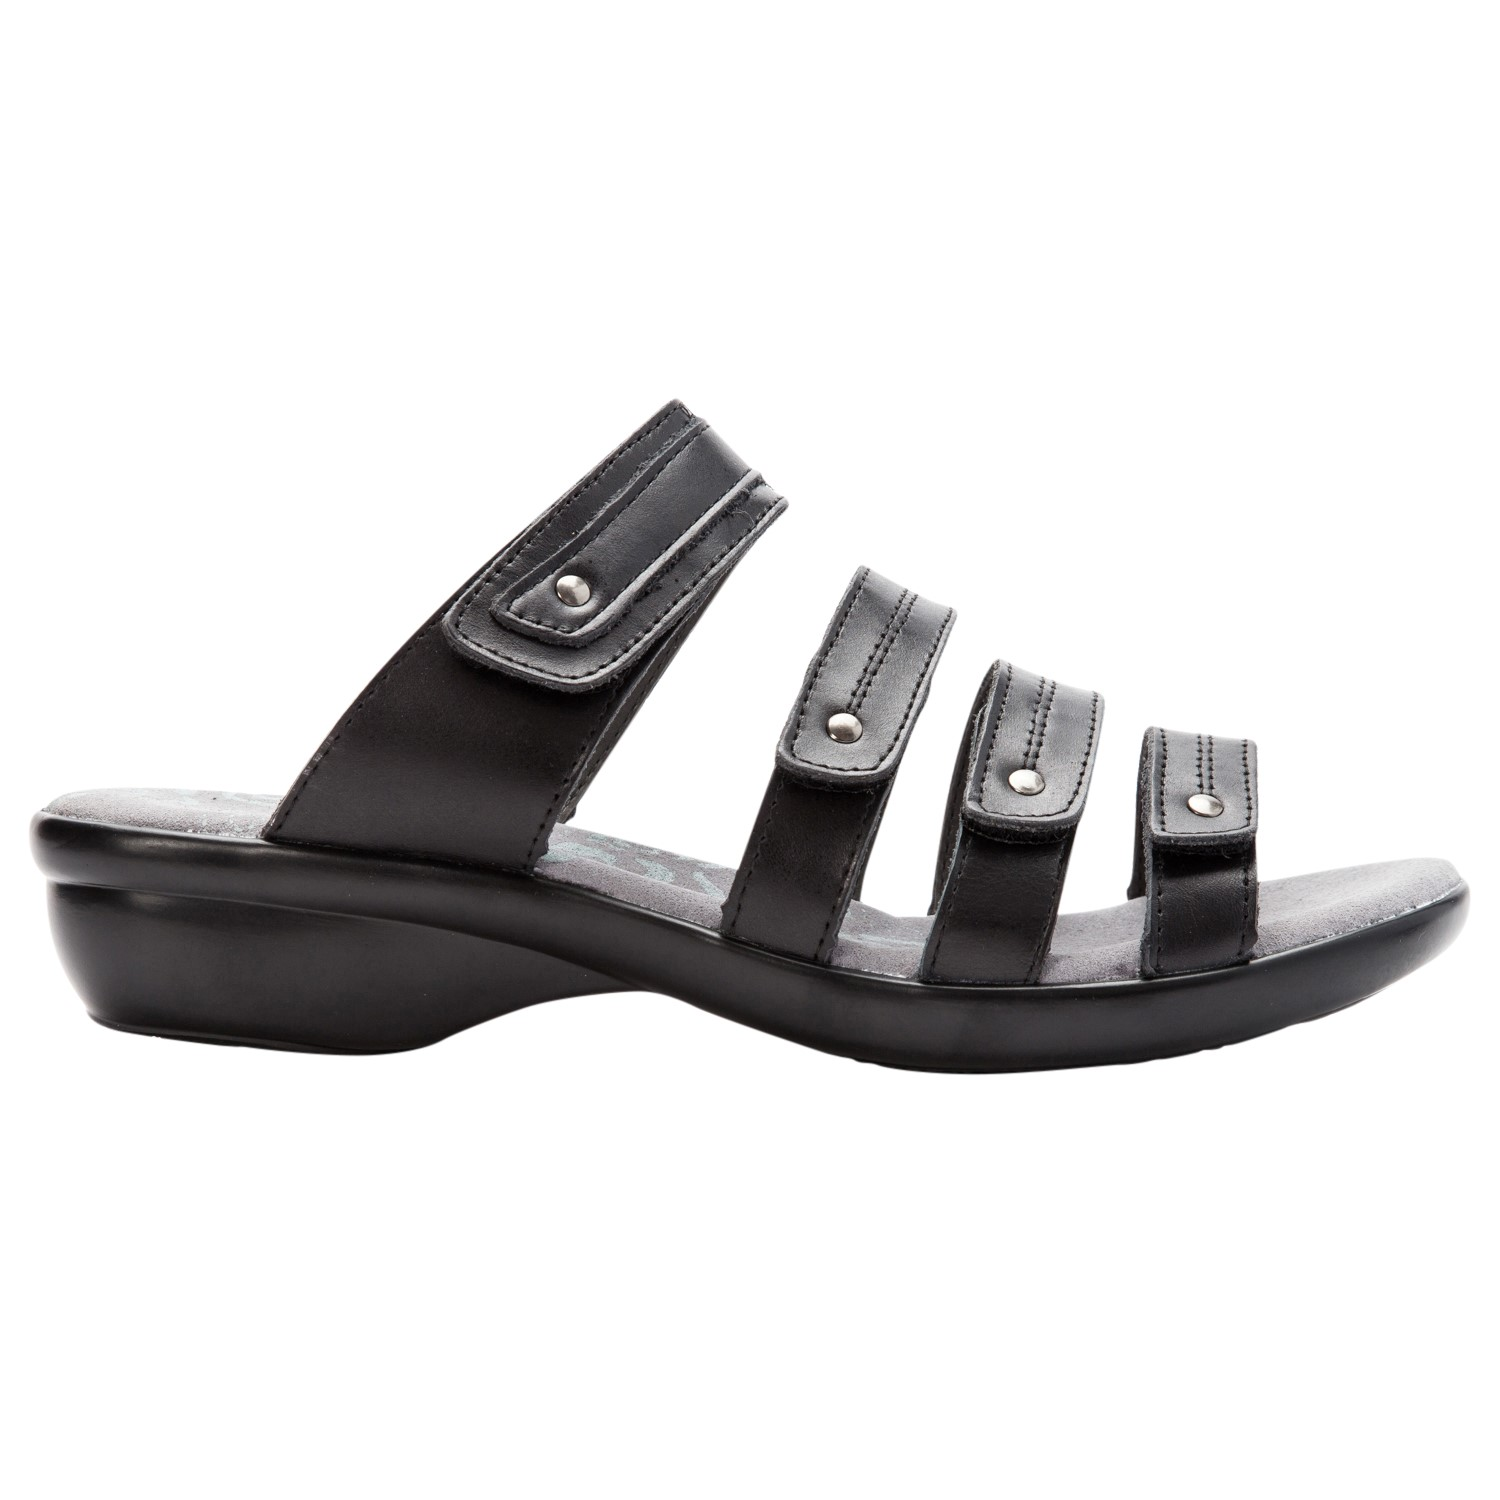 230ad6720e4 Propet Aurora Slide Womens Sandal - Black - out-step view